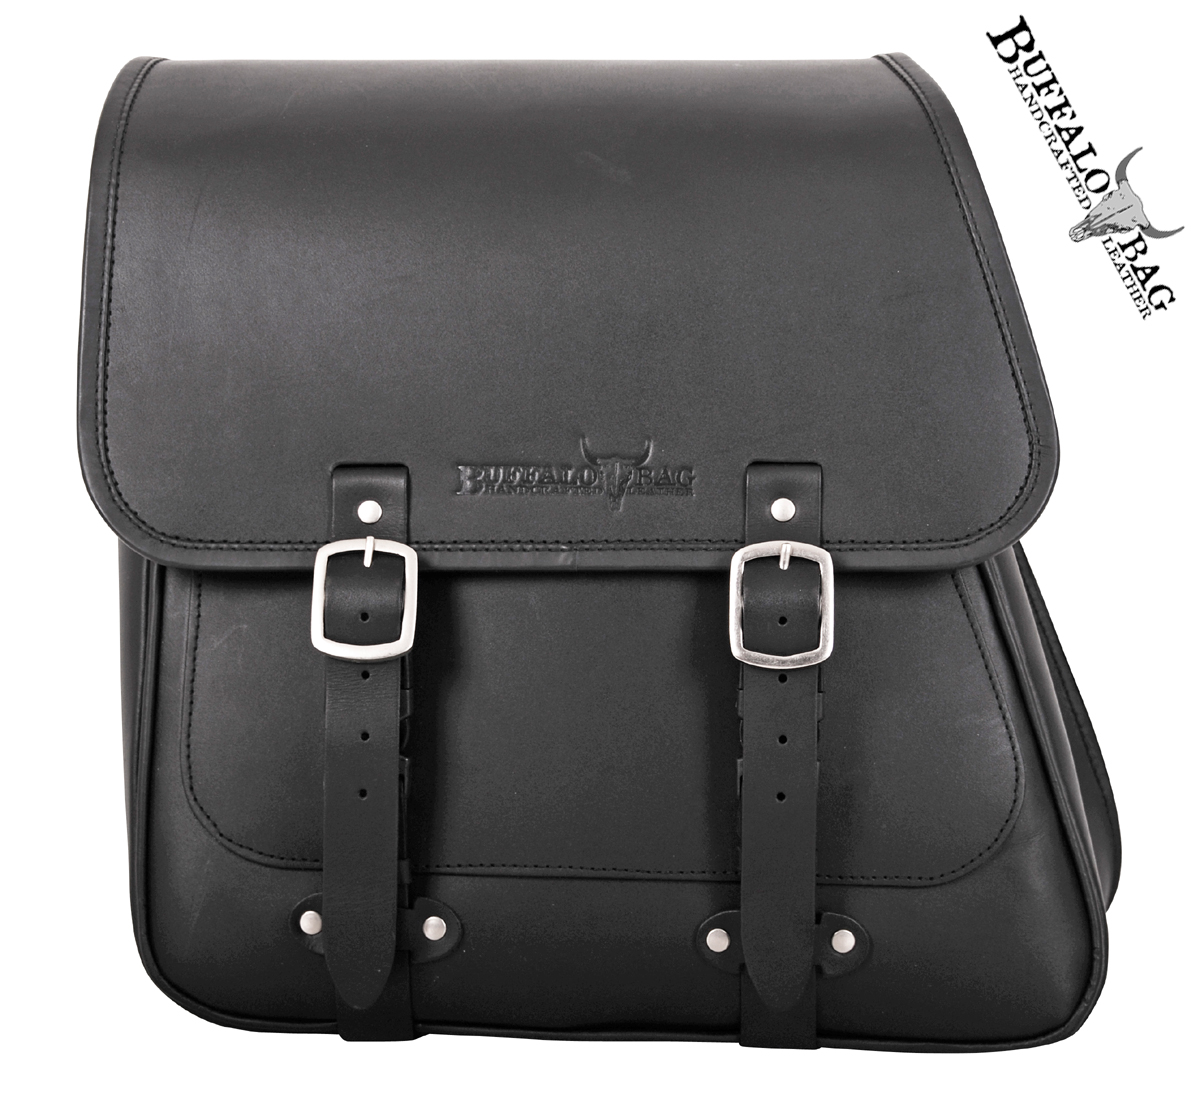 25l satteltasche links harley davidson dyna street bob fat bob saddlebag ebay. Black Bedroom Furniture Sets. Home Design Ideas